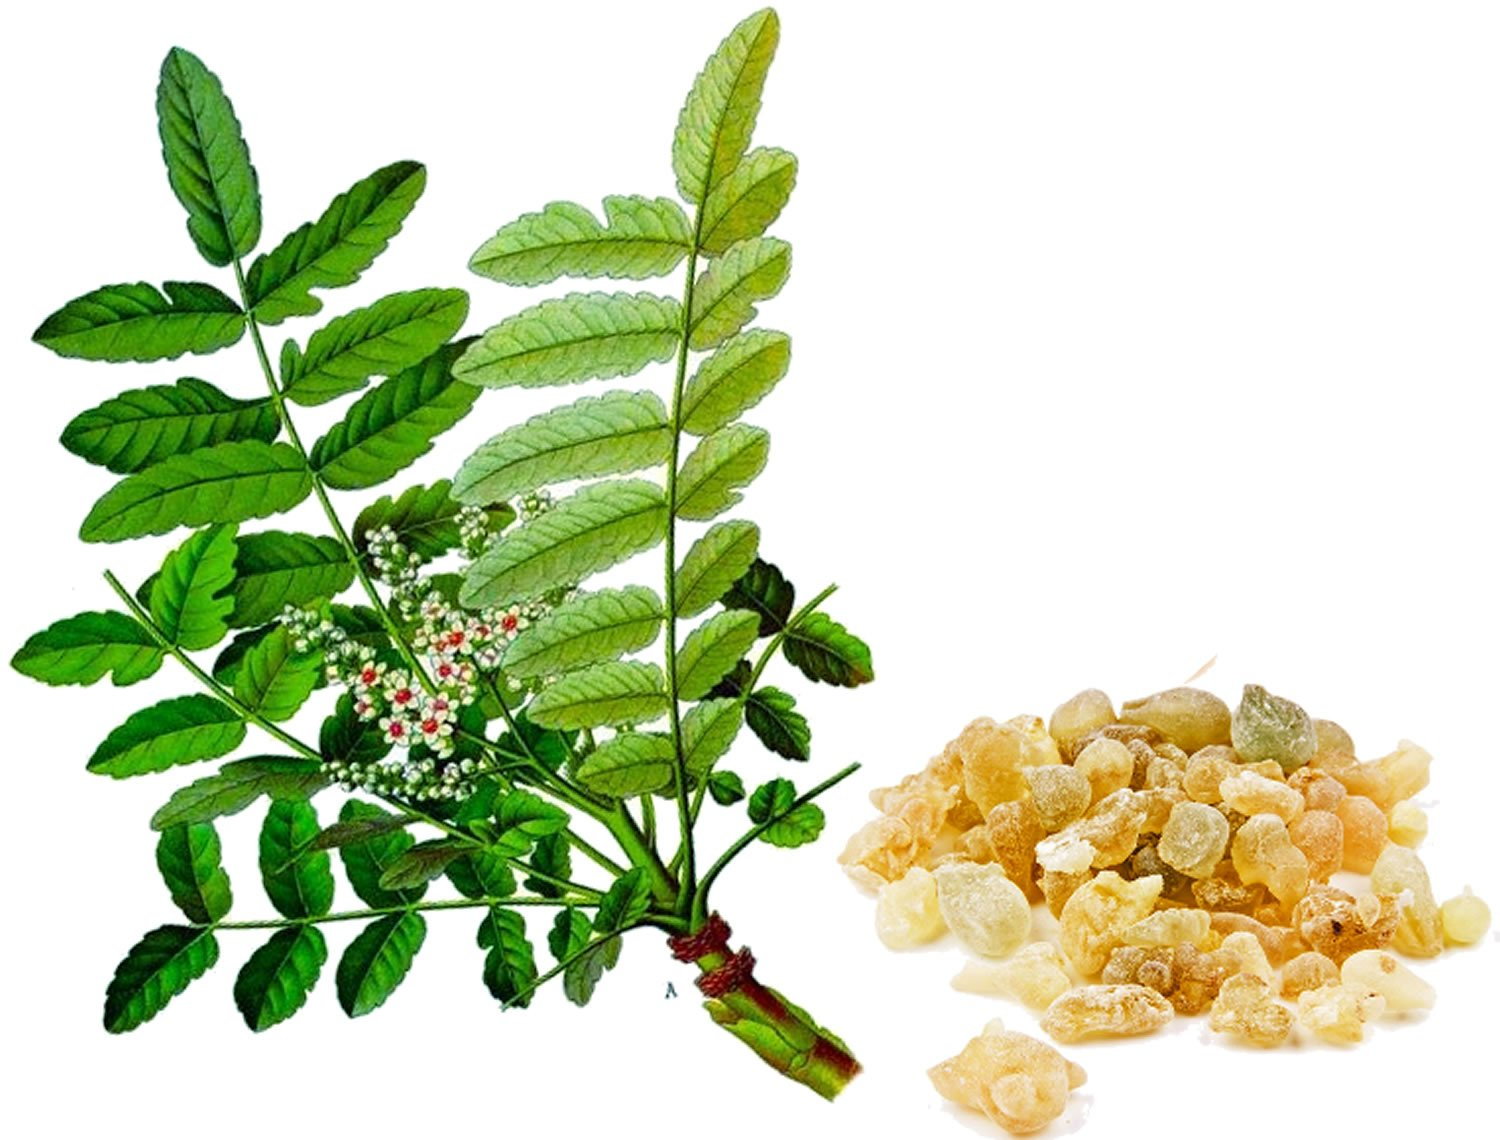 boswellia-serrata-leaf-and-resin.jpg